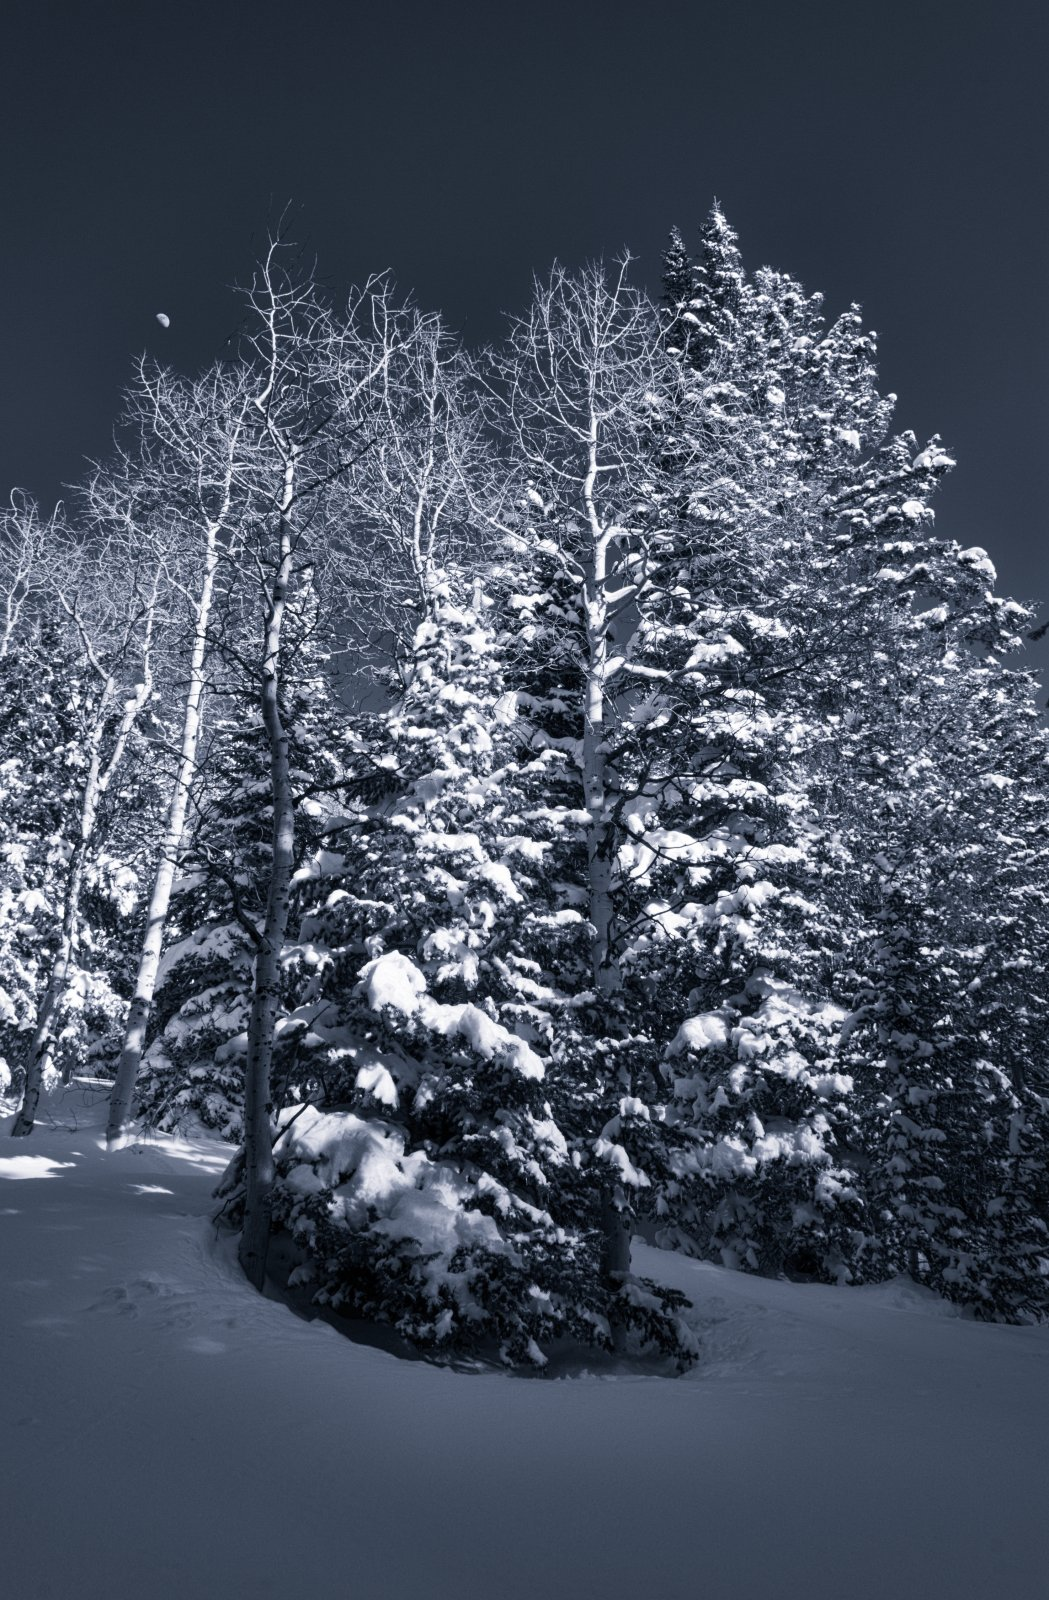 Snowshoeing With Ade0102-sm-bw.jpg